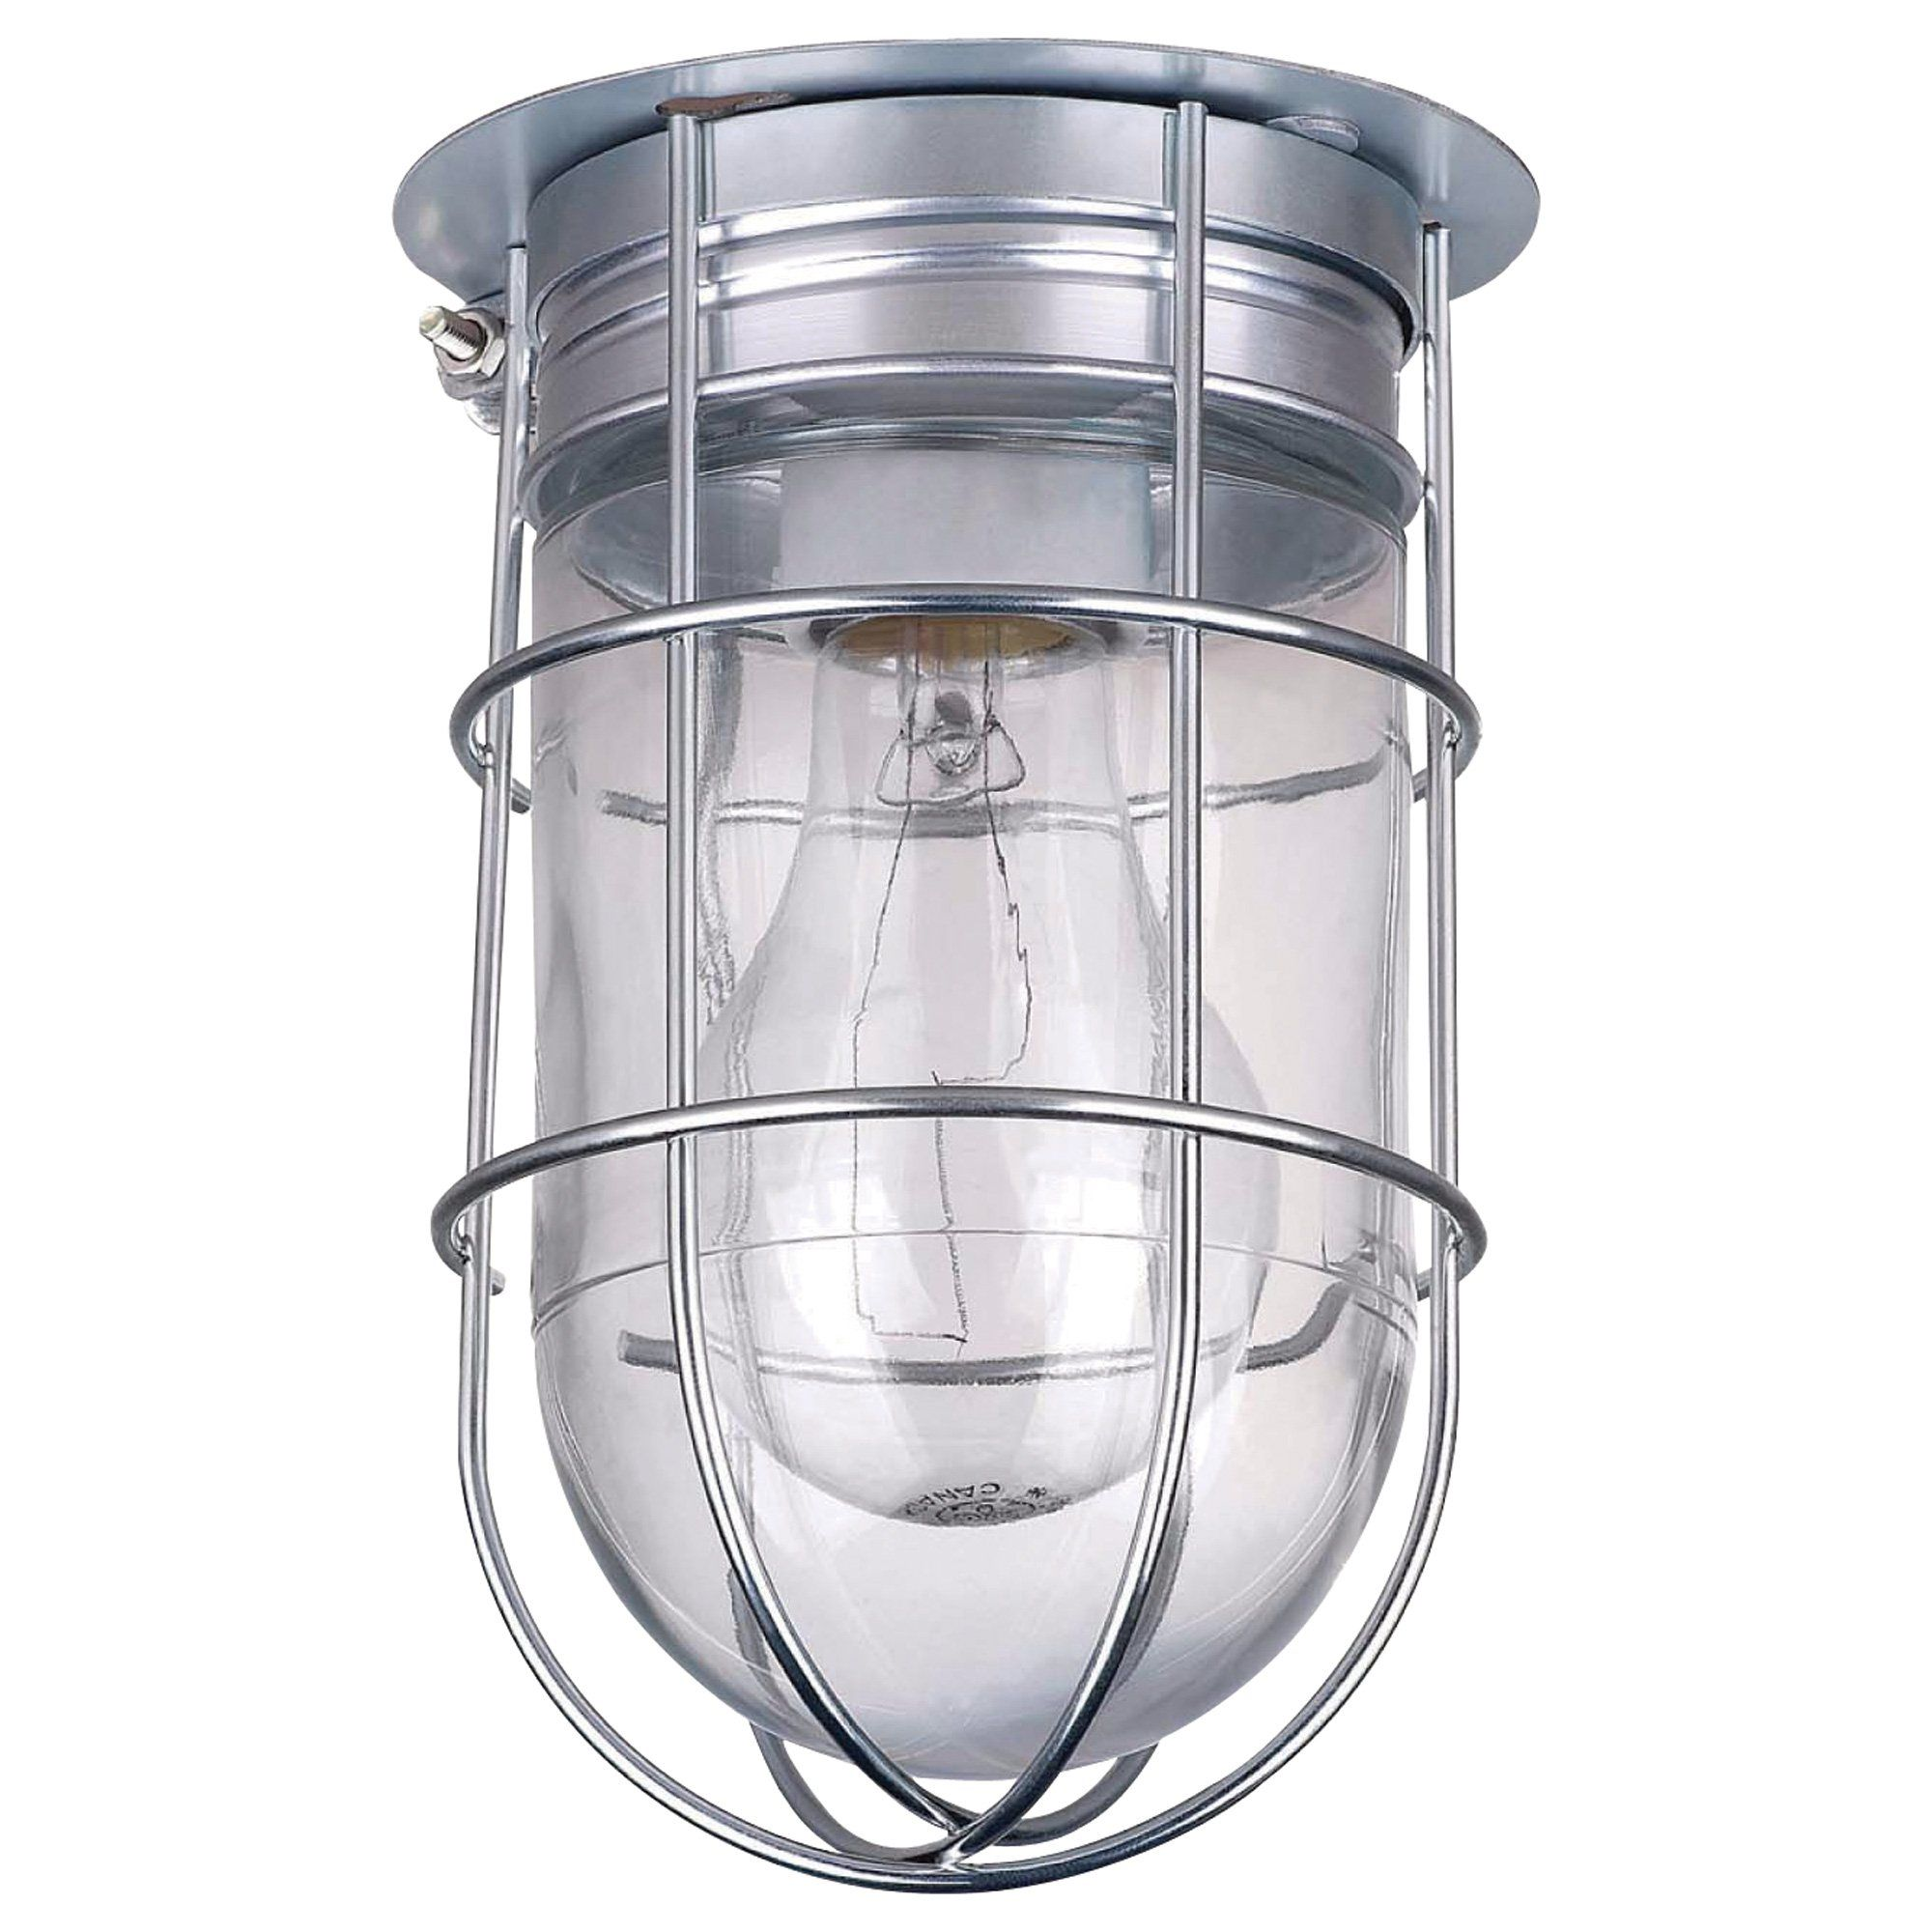 Canarm Ceiling/Wall Outdoor/Indoor Barn Light with Cage 4